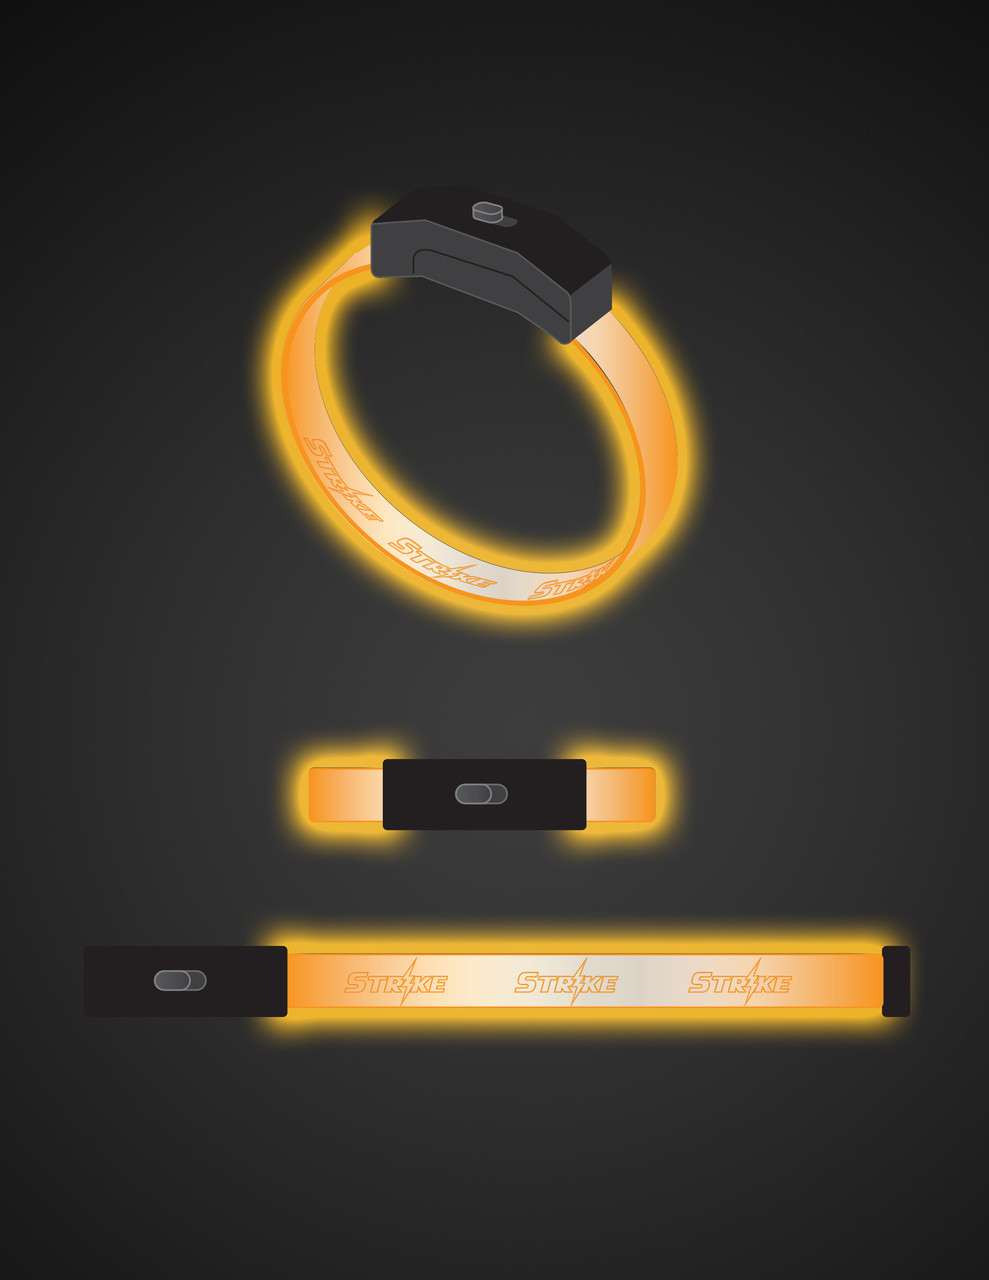 Orange,LEd,LED, Band, Bracelet, Wristband, engraved, custom, Light up